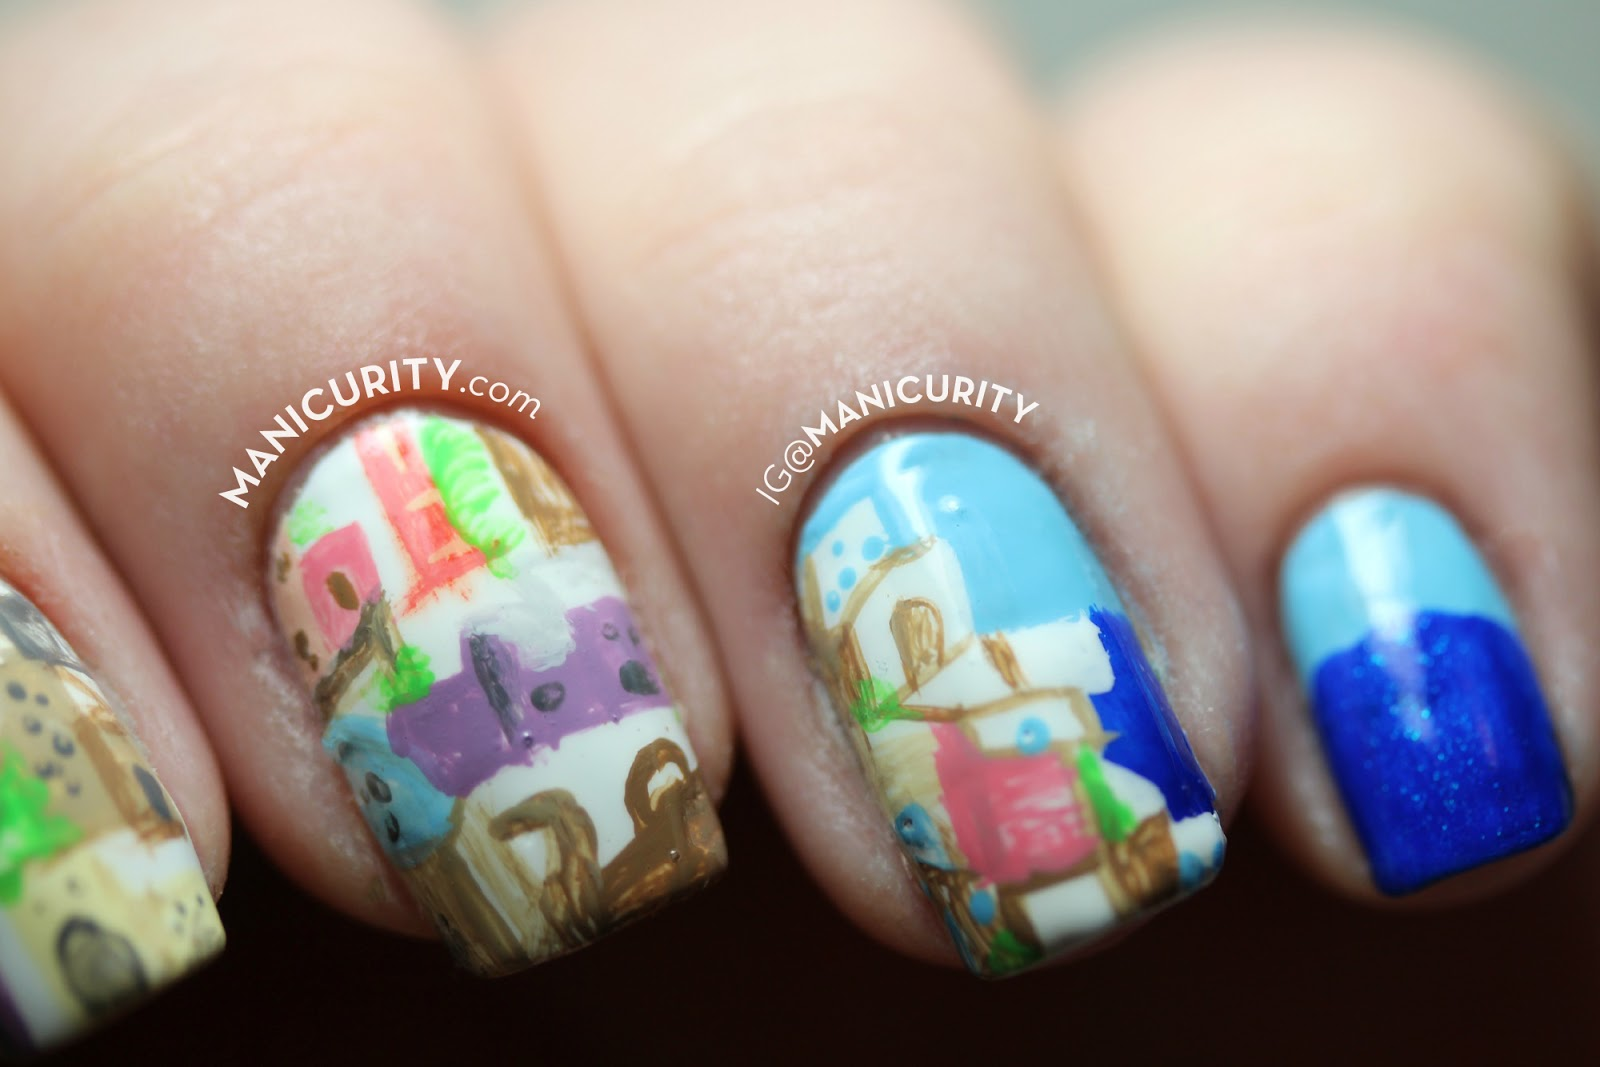 The Digit-al Dozen: Seaside Santorini - freehand village nail art | Manicurity.com